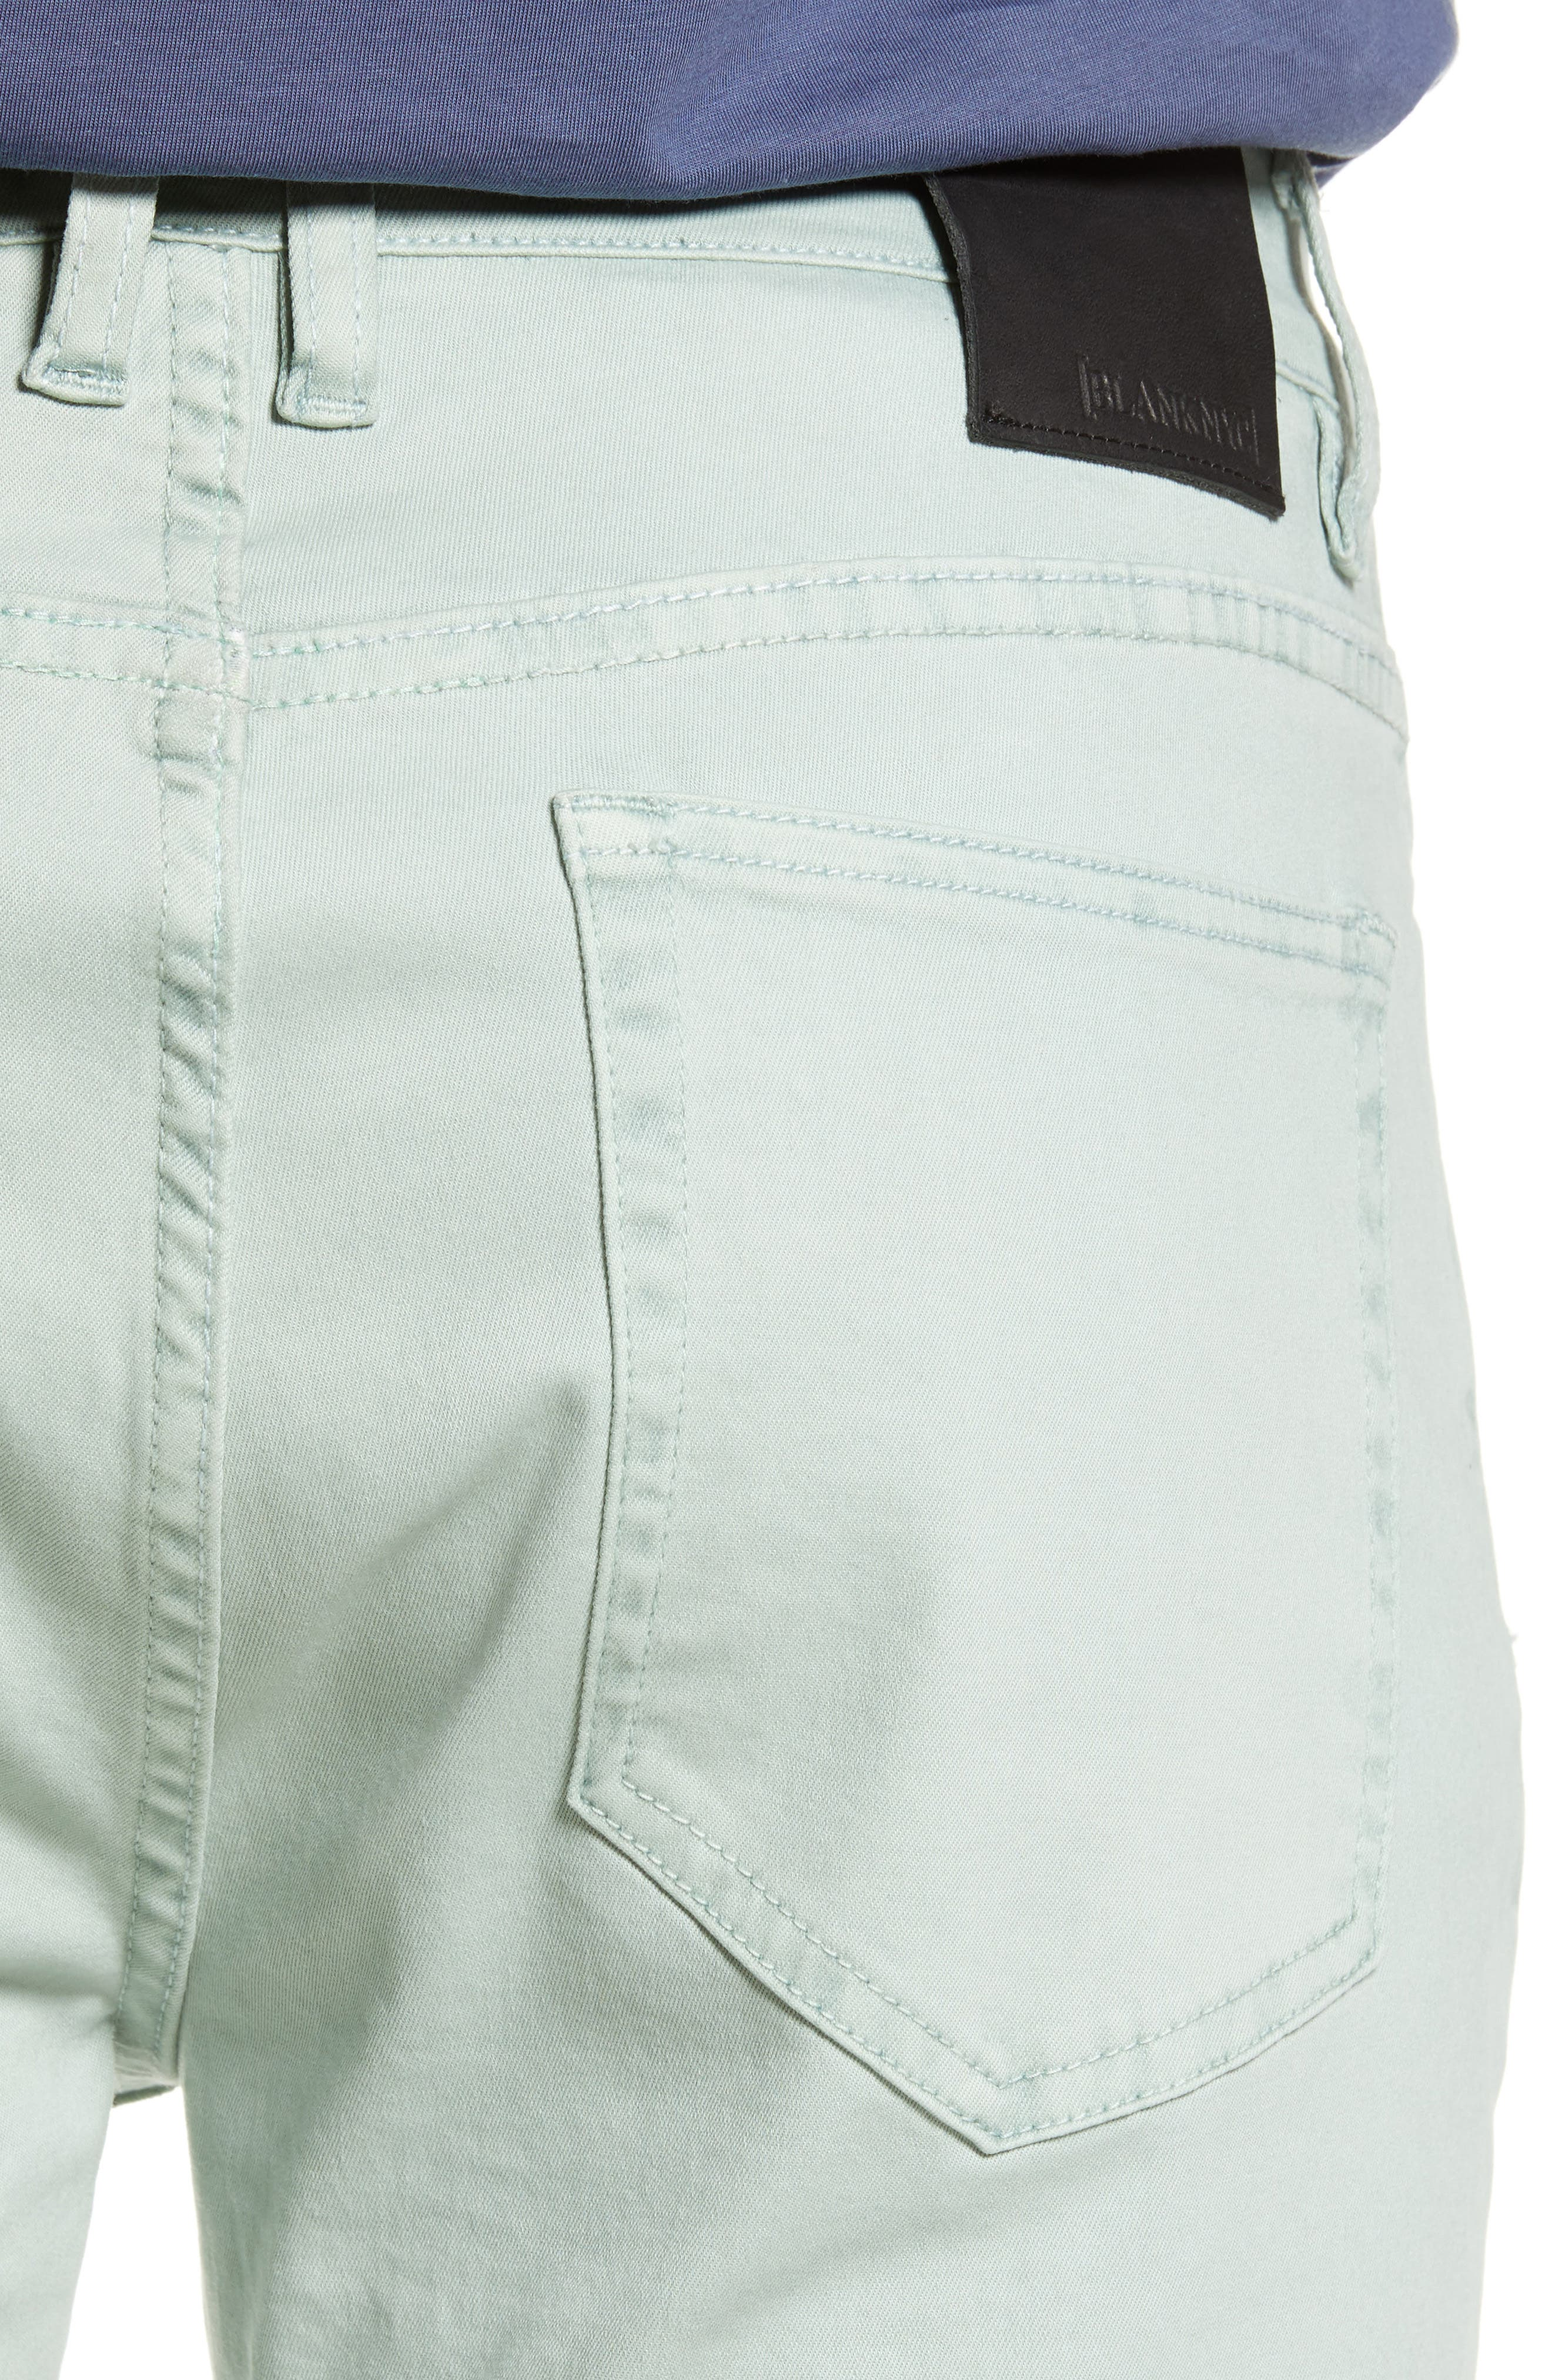 BLANKNYC, Wooster Slim Fit Jeans, Alternate thumbnail 5, color, PURE DEVOTION